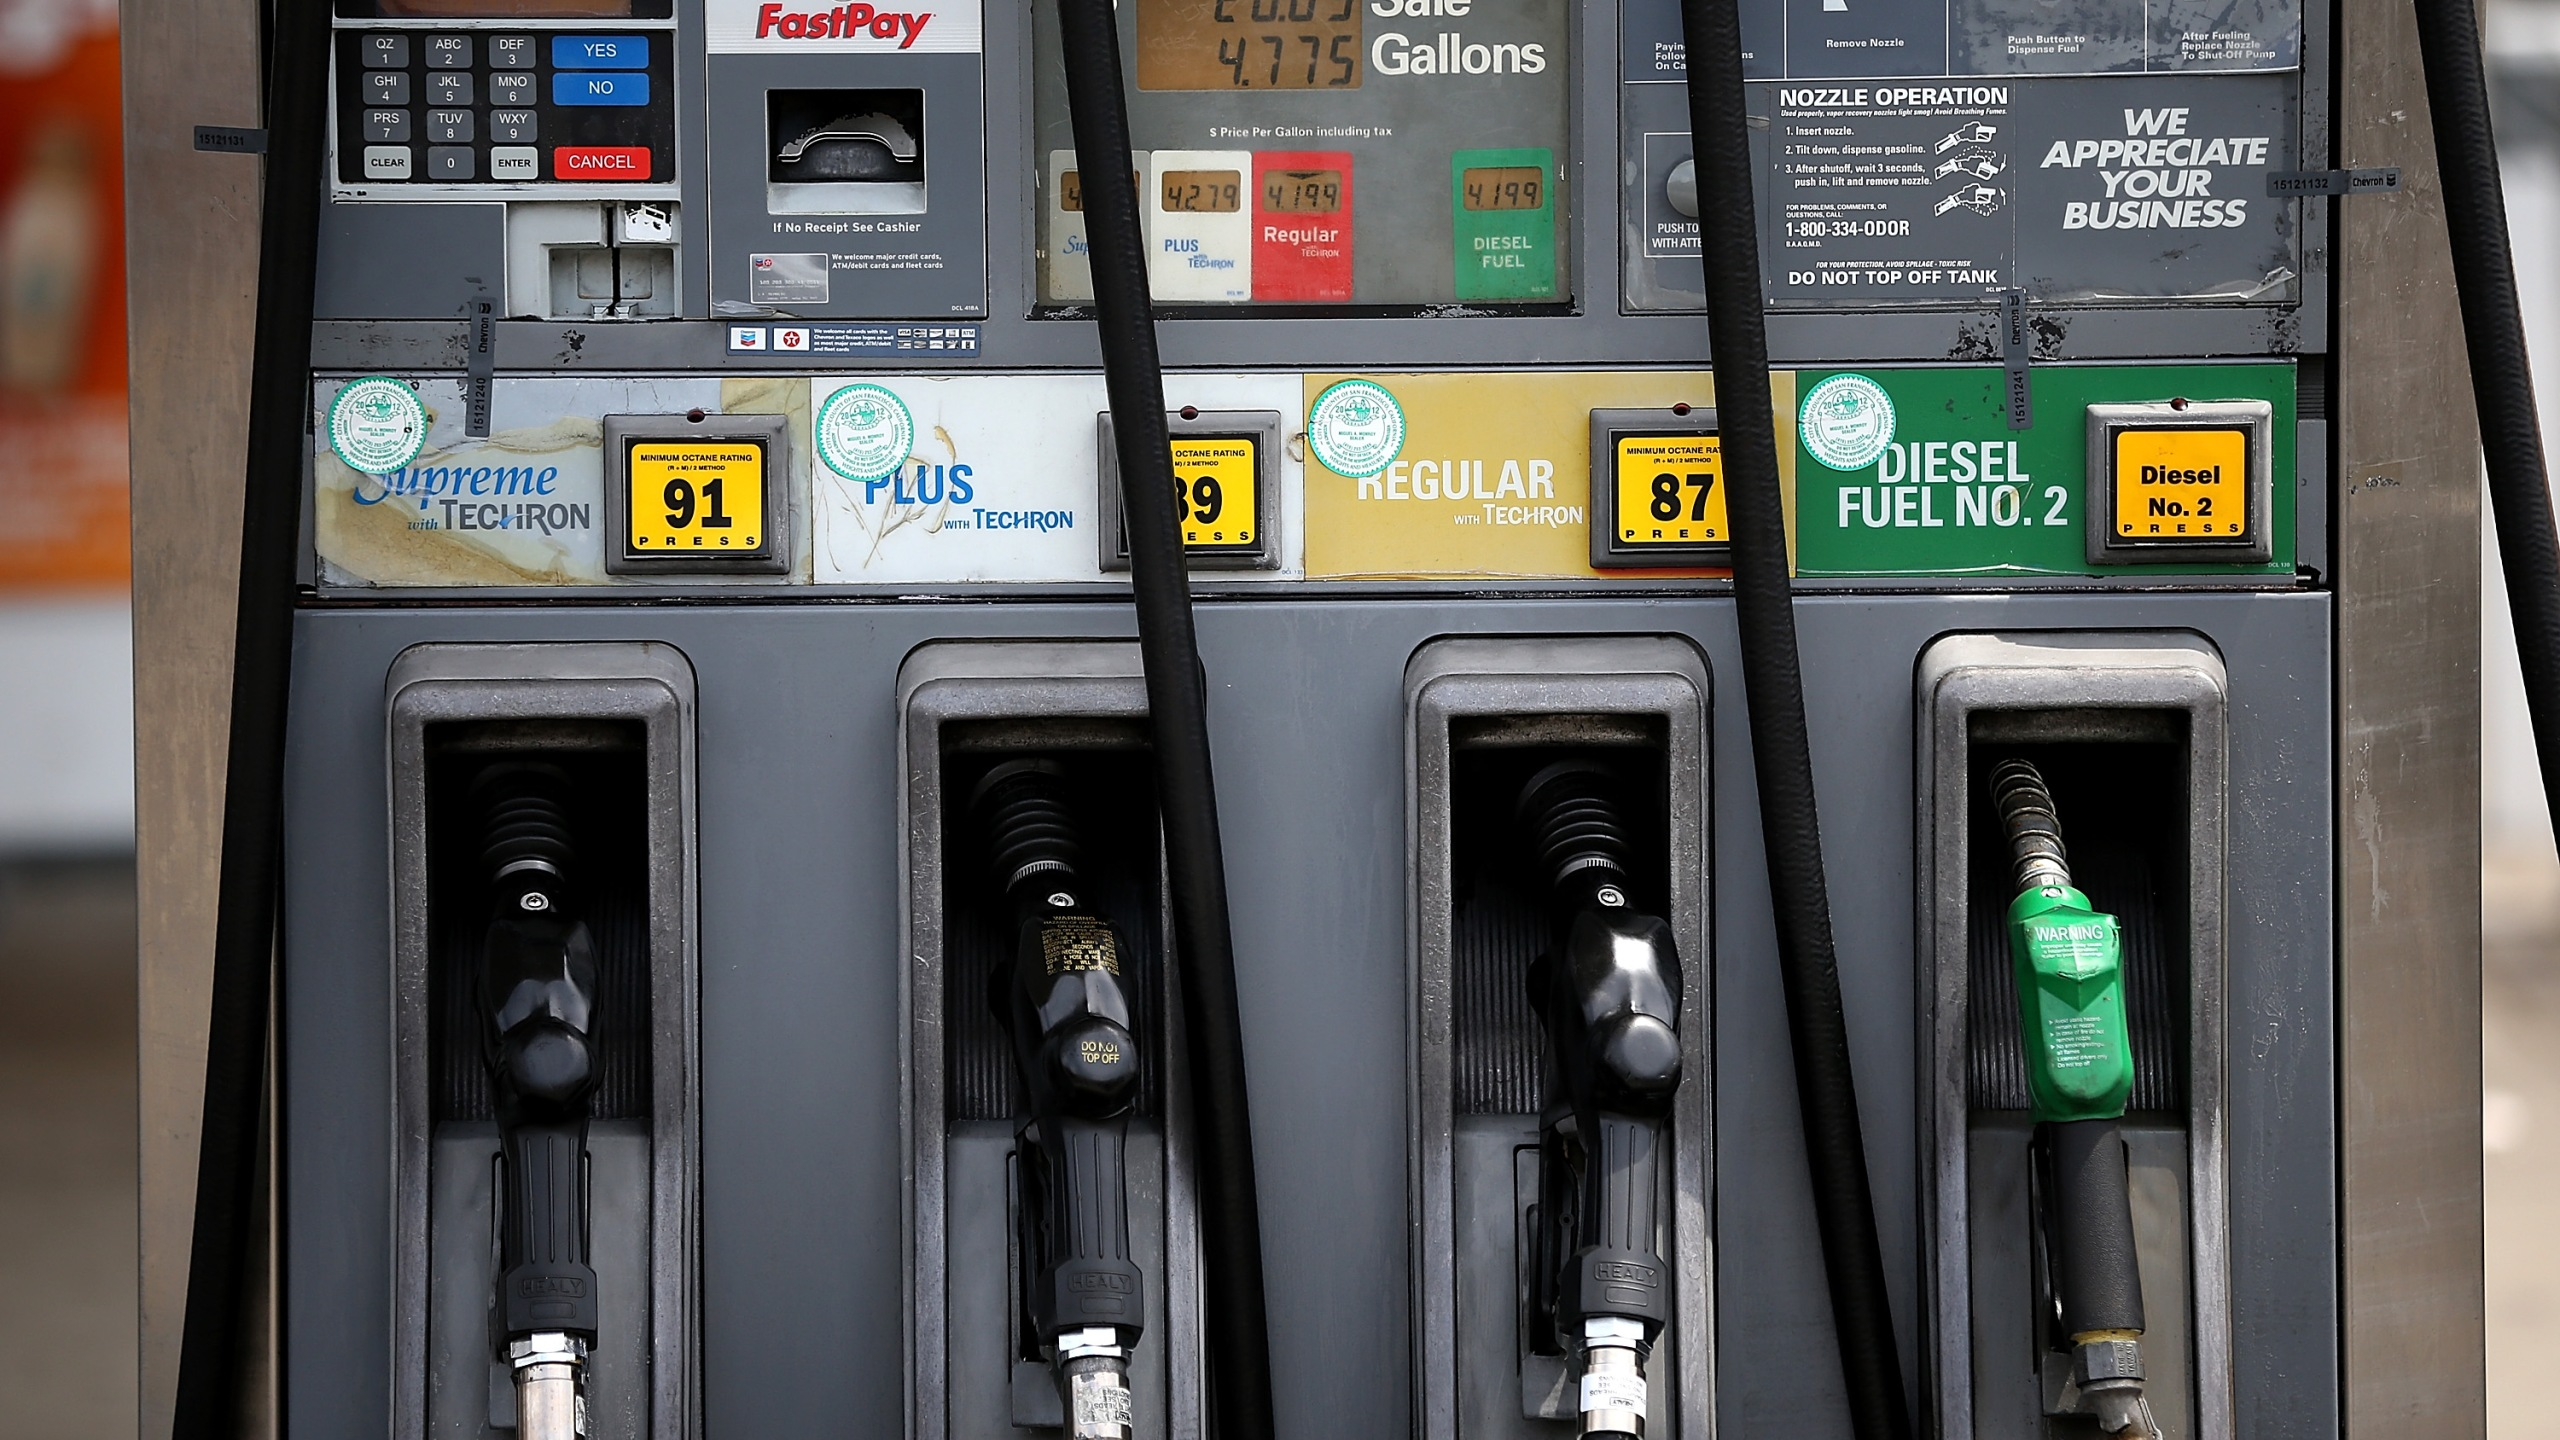 Gas pumps are seen at a Chevron gas station on July 22, 2013 in San Francisco. (Credit: Justin Sullivan/Getty Images)